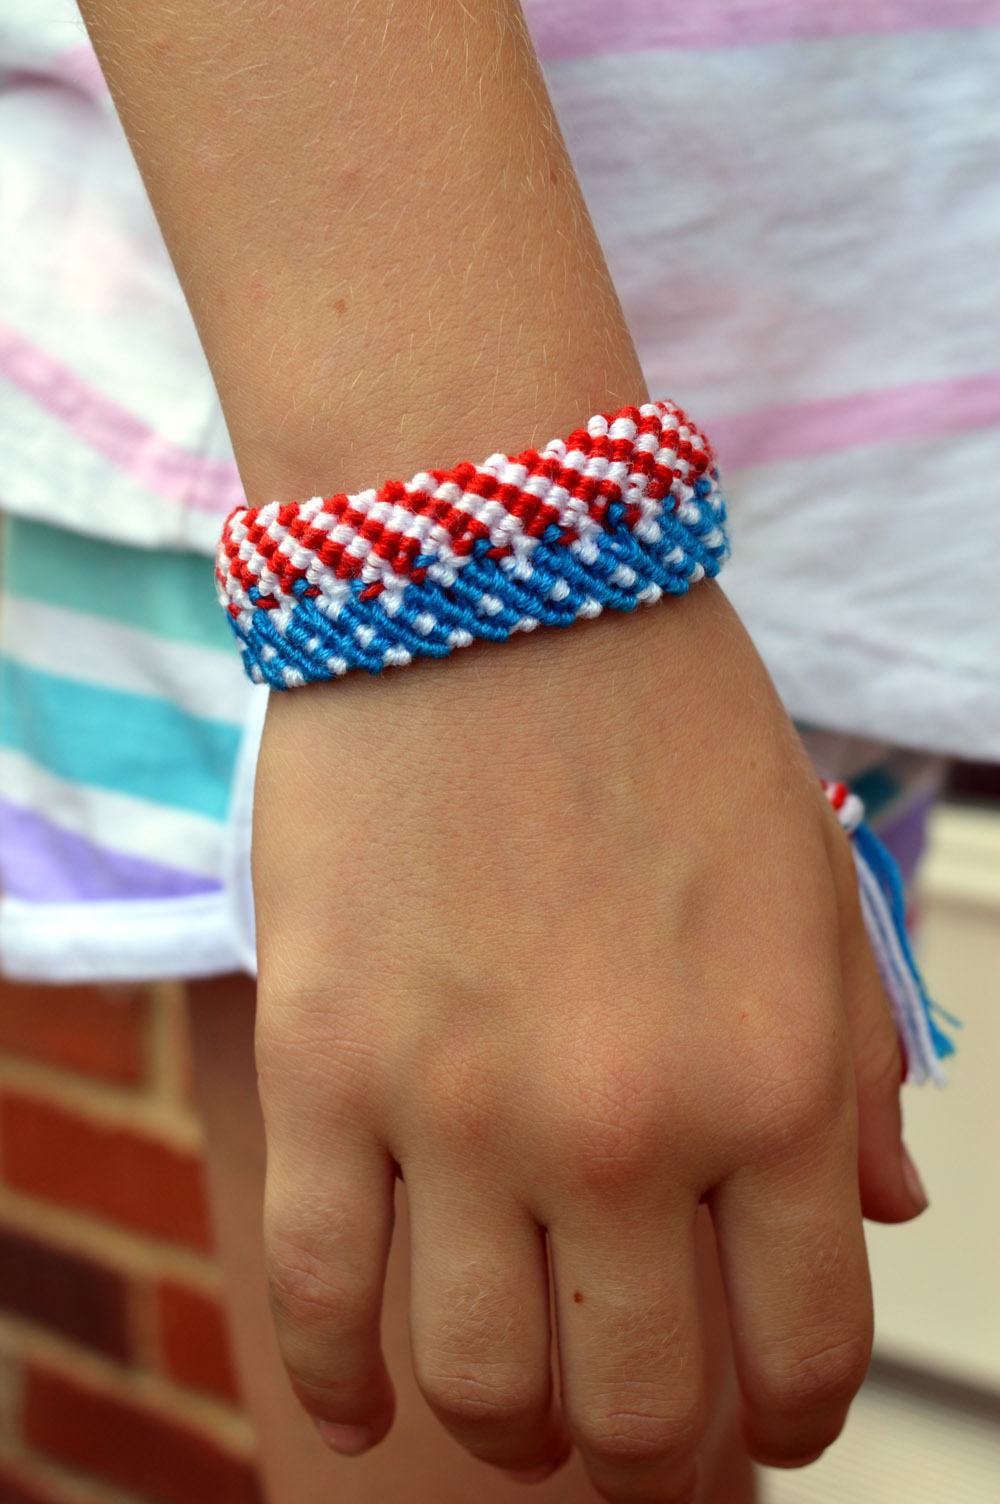 macrame 4th of july bracelet